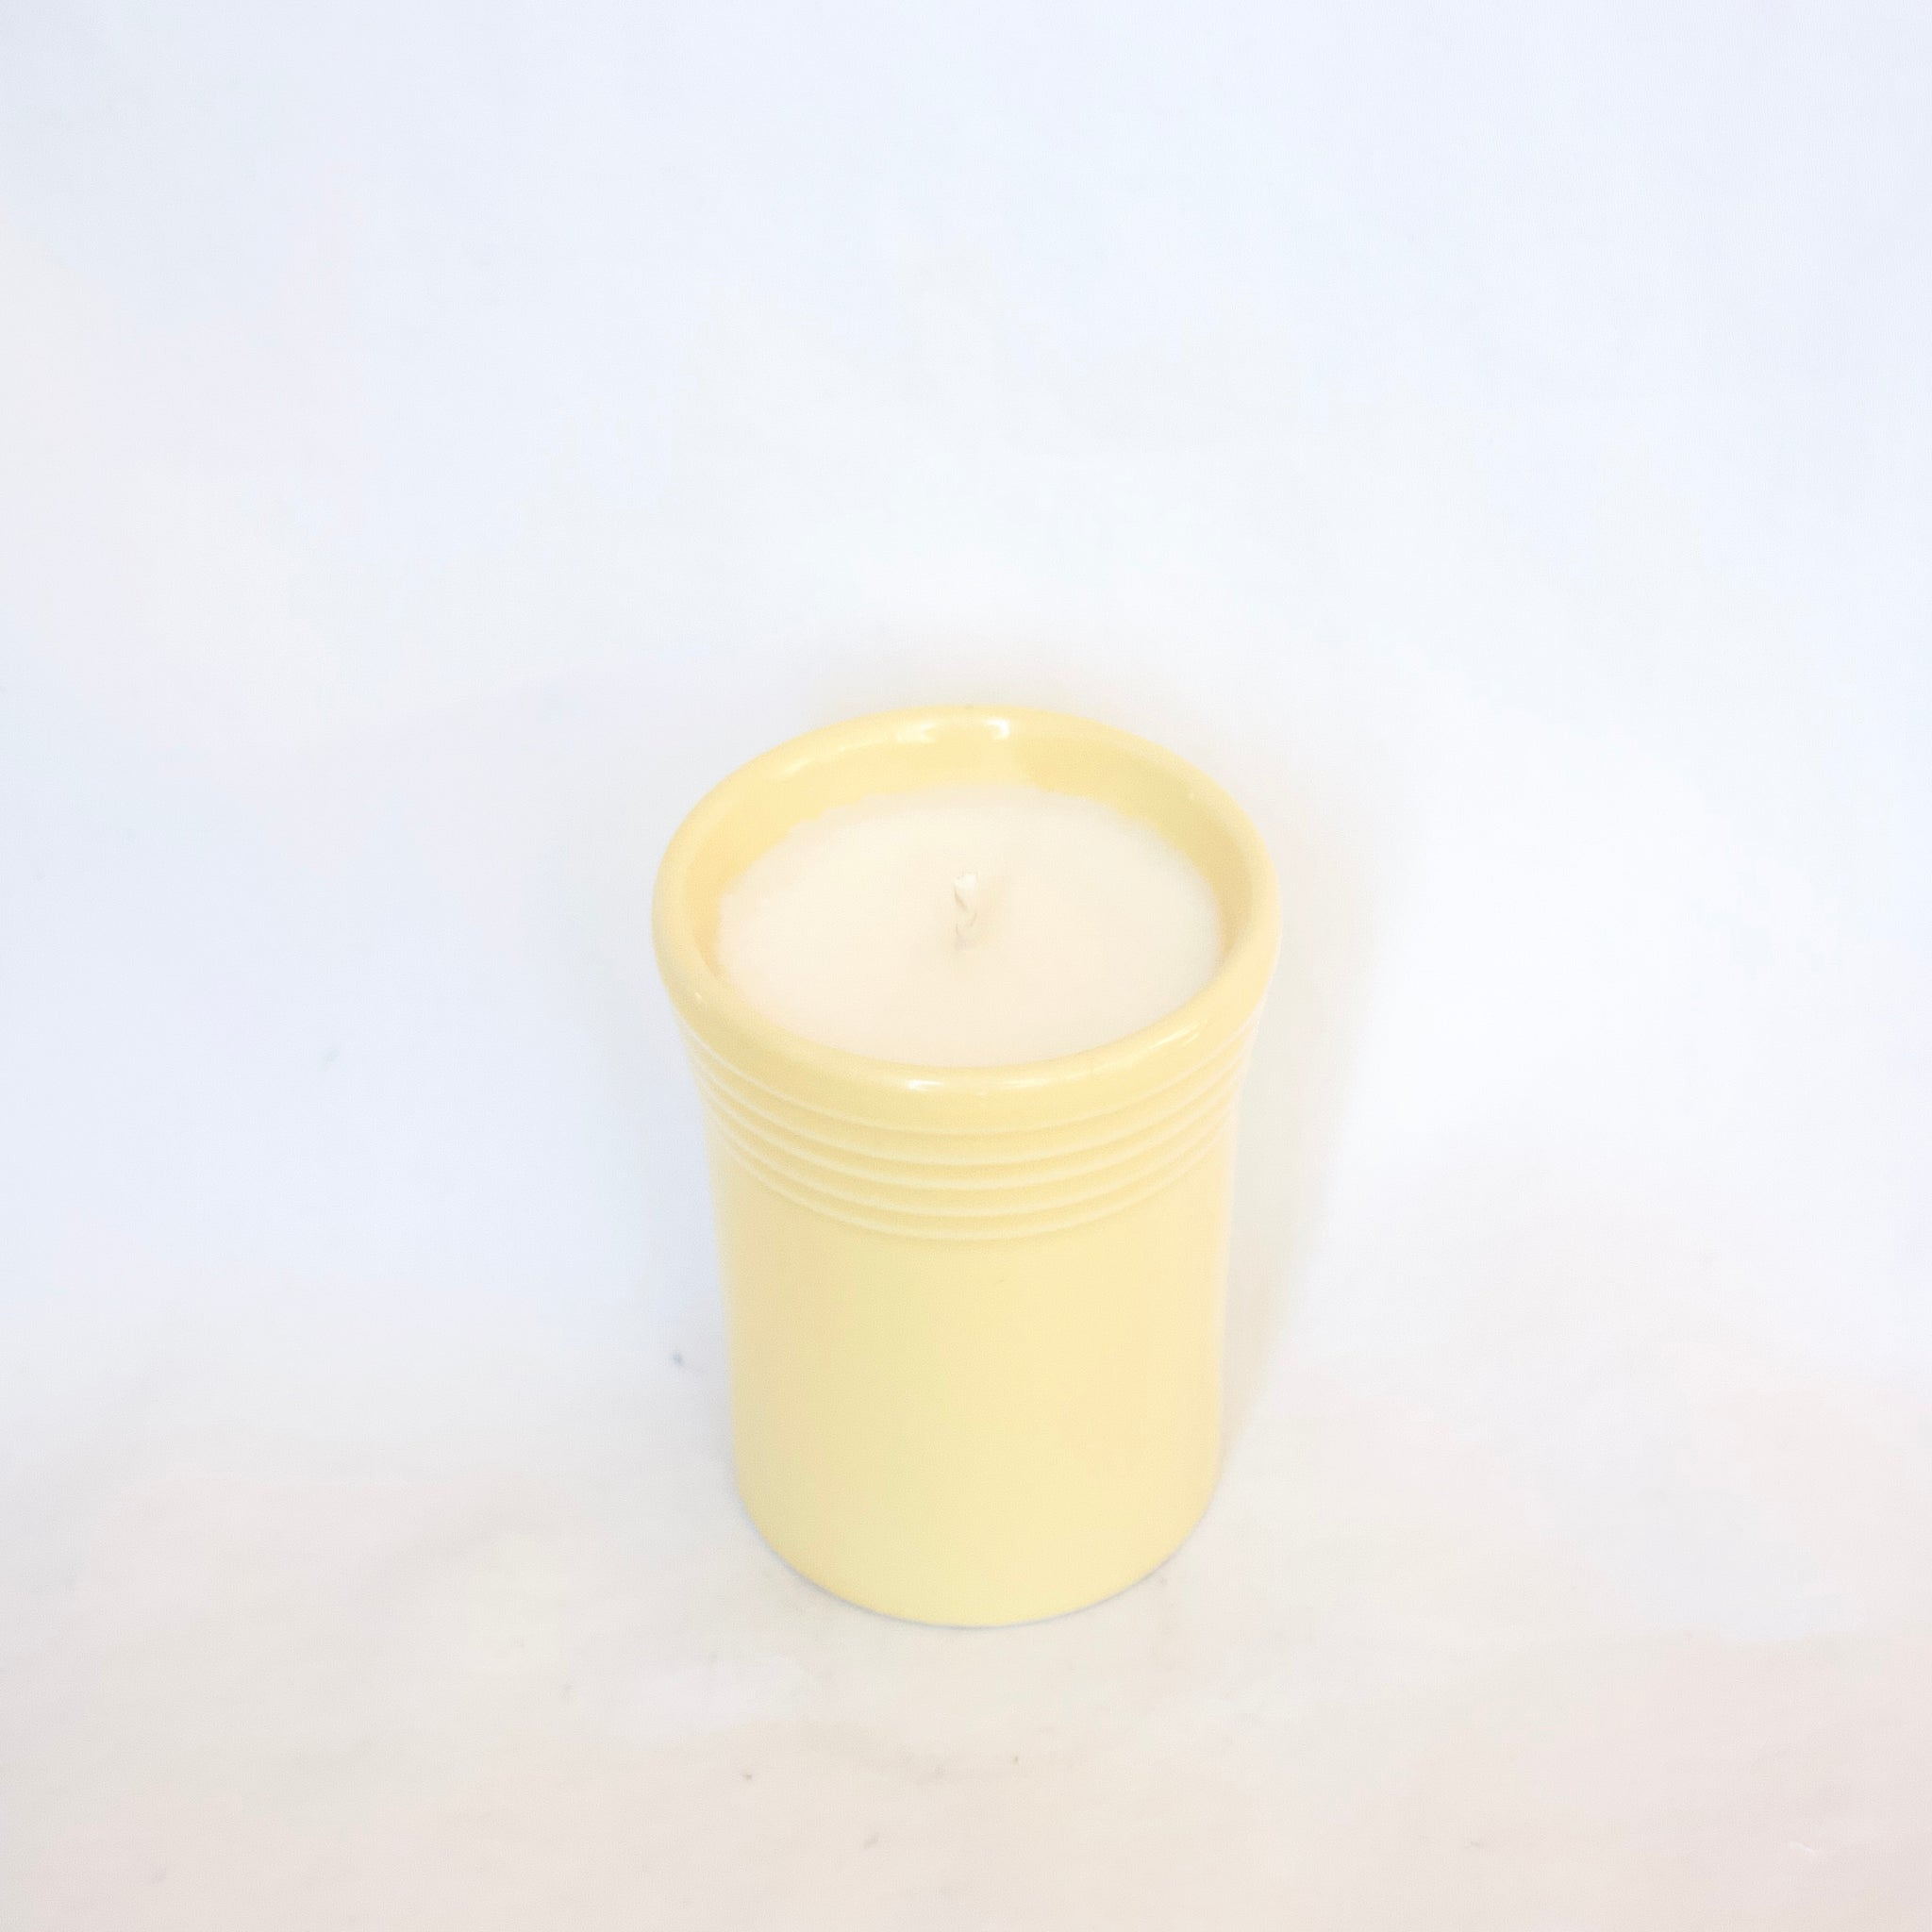 Vintage Fiesta Ware Candles: 3-Piece Set